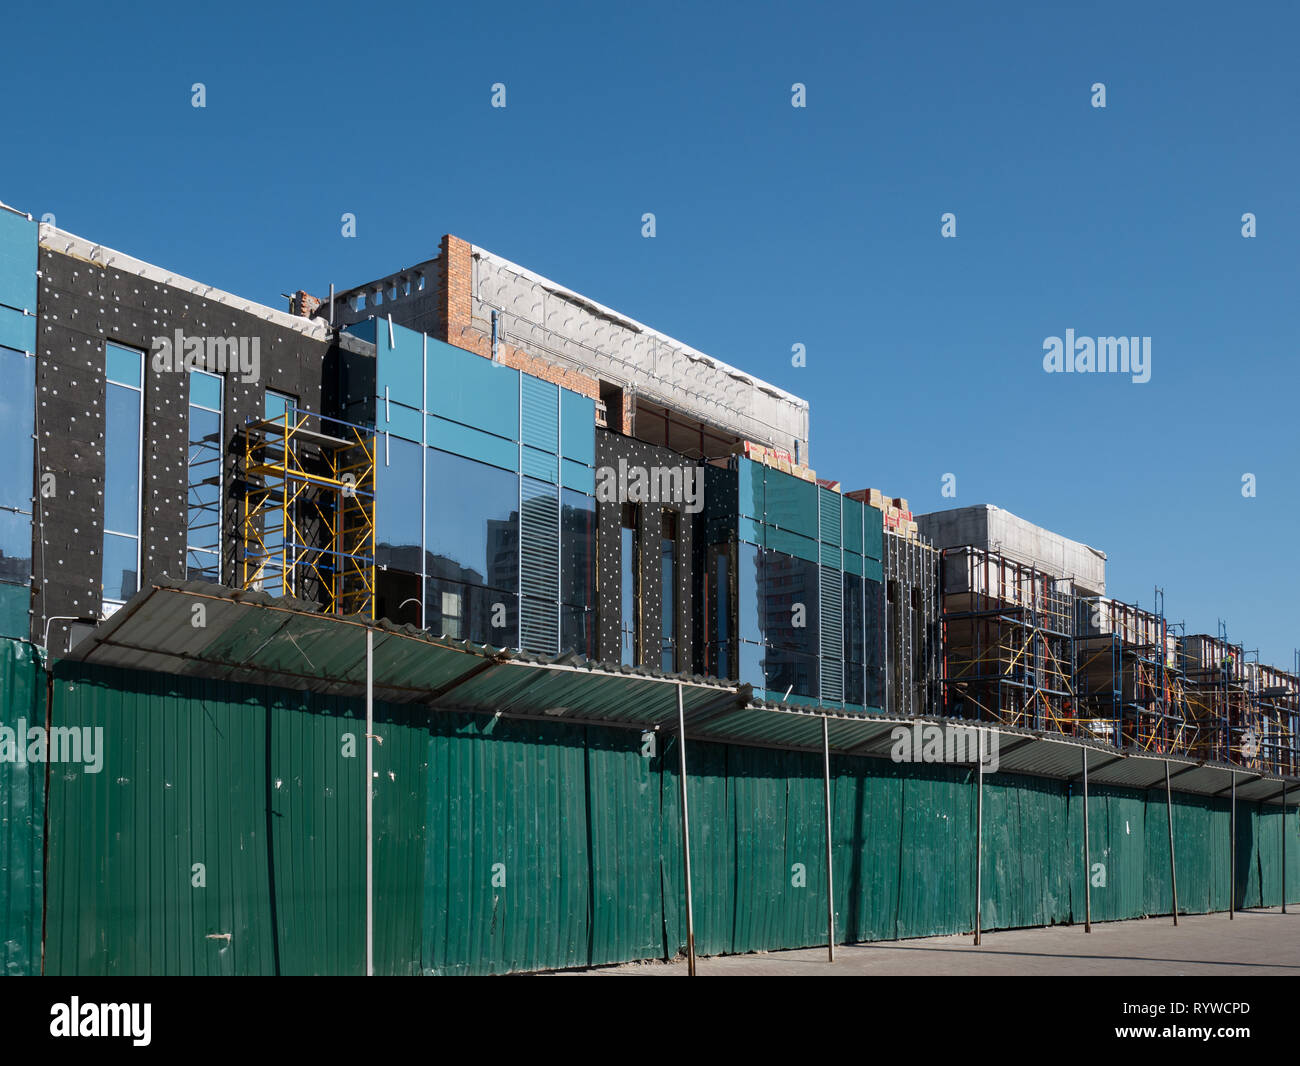 long green wooden fence at construction site. building small shopping mall store from glass, metal and concrete - Stock Image